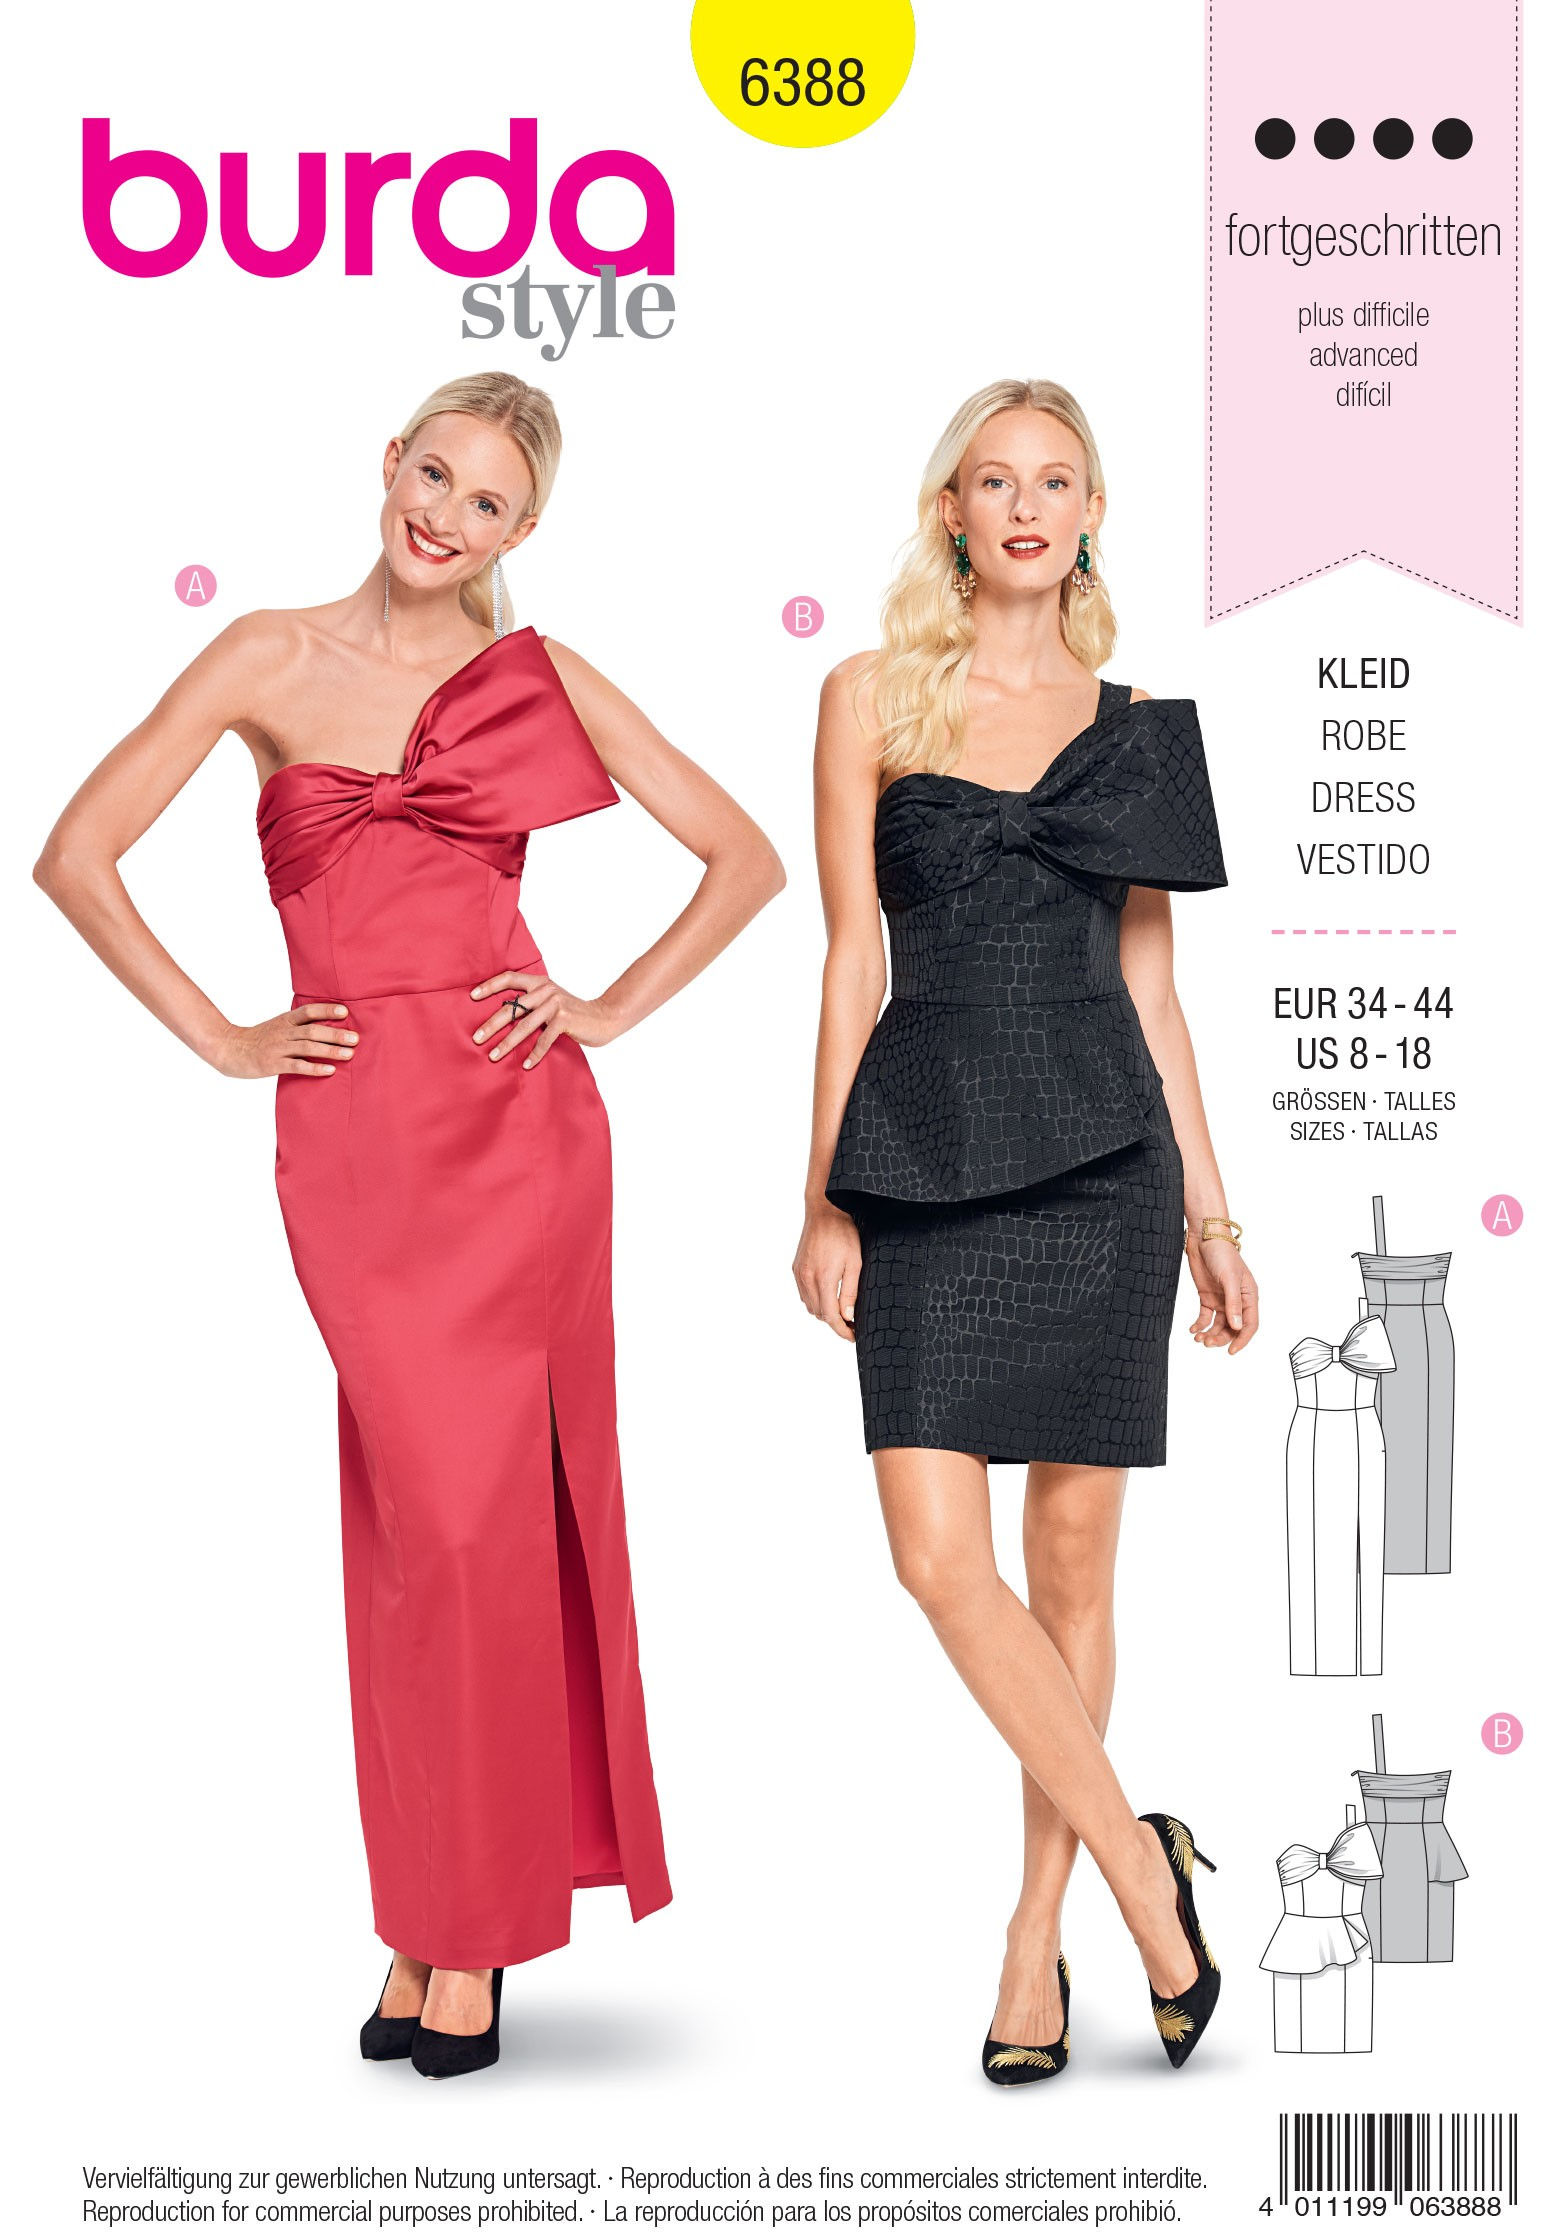 Burda Sewing Pattern 6388 Style Woman's Retro Gown Dress with Bow